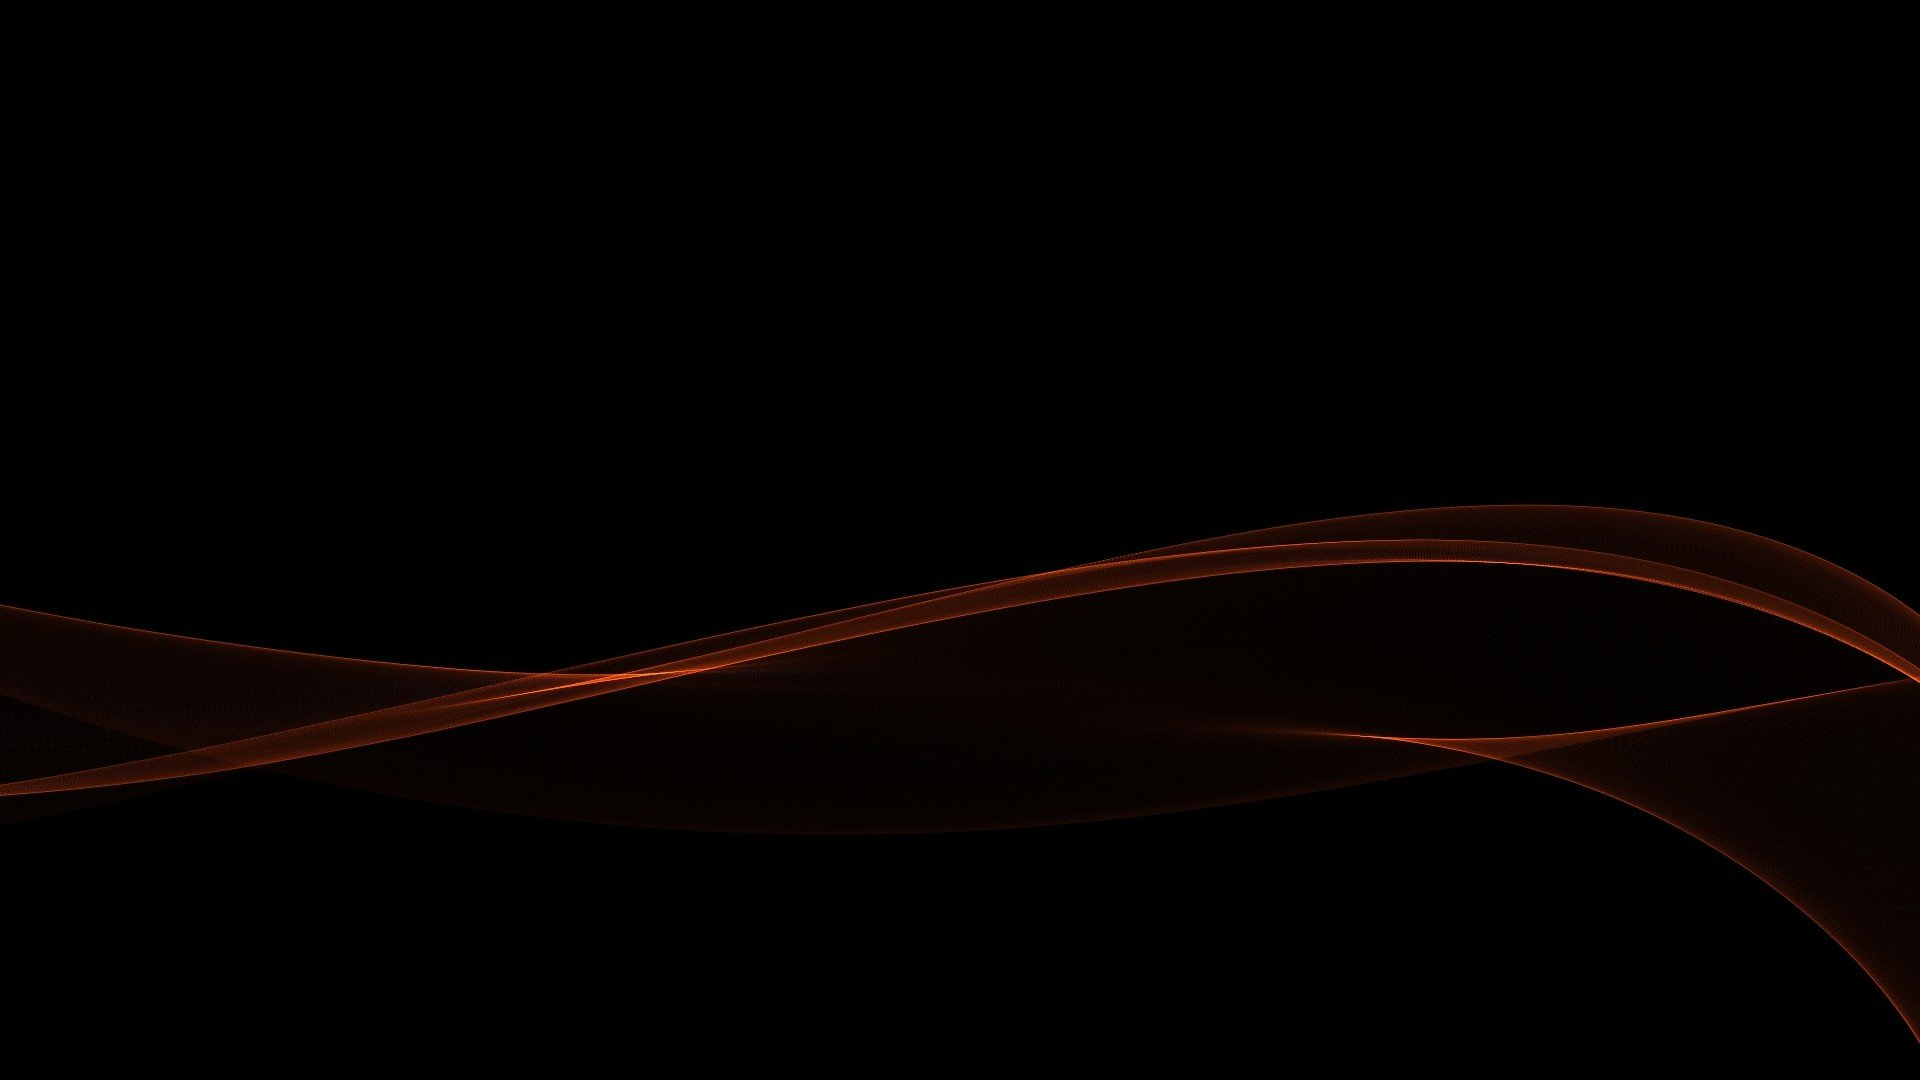 Email >> red-gradient-minimalistic-waves-black-abstract-wallpaper-desktop-wallpapers-images-minimalist ...